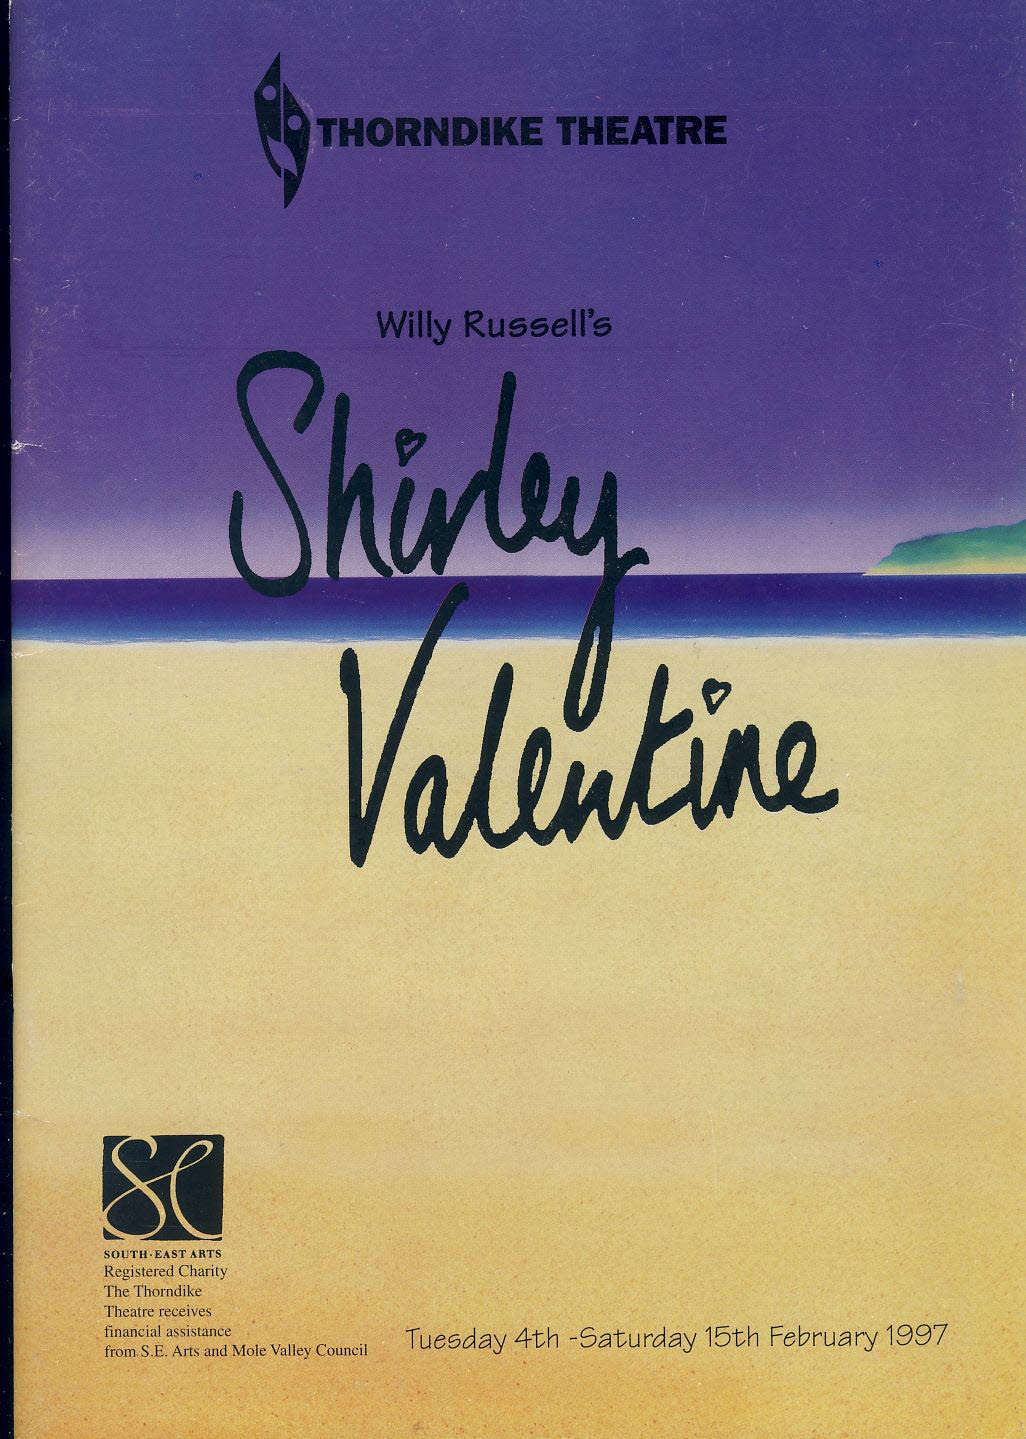 1997 THORNDIKE Theatre Programme SHIRLEY VALENTINE refb101121 Pauline Daniels Pre-owned Programme in Good Condition. Measures approx 18cm x 25cm